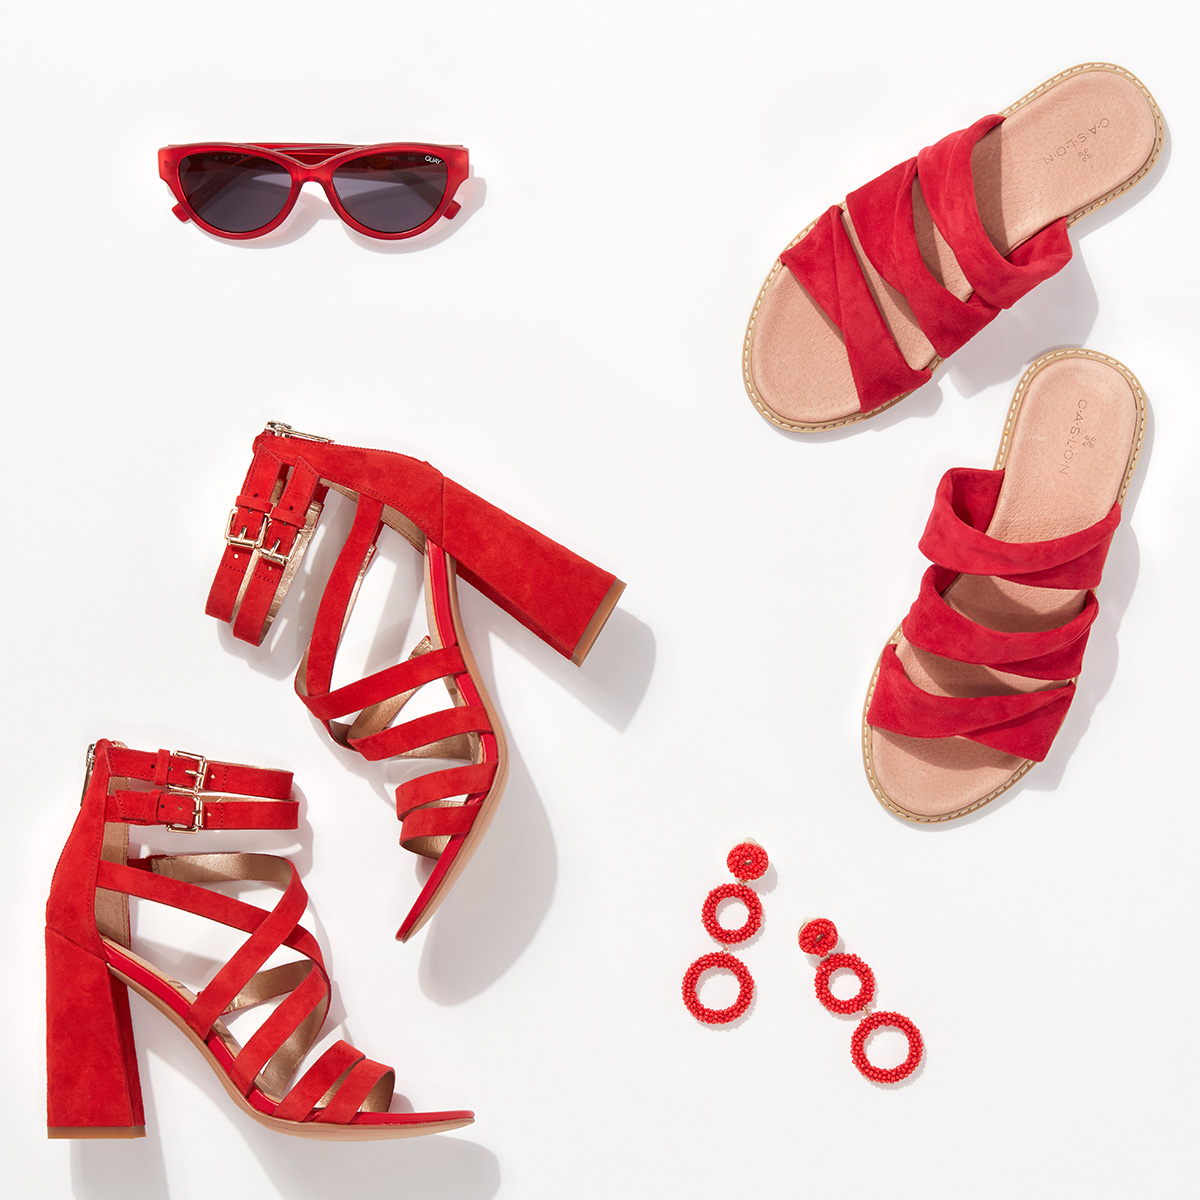 A pair of strappy, red heels with gold buckles, a pair of red hoop earrings and a pair of red sunglasses arranged neatly on a white background.